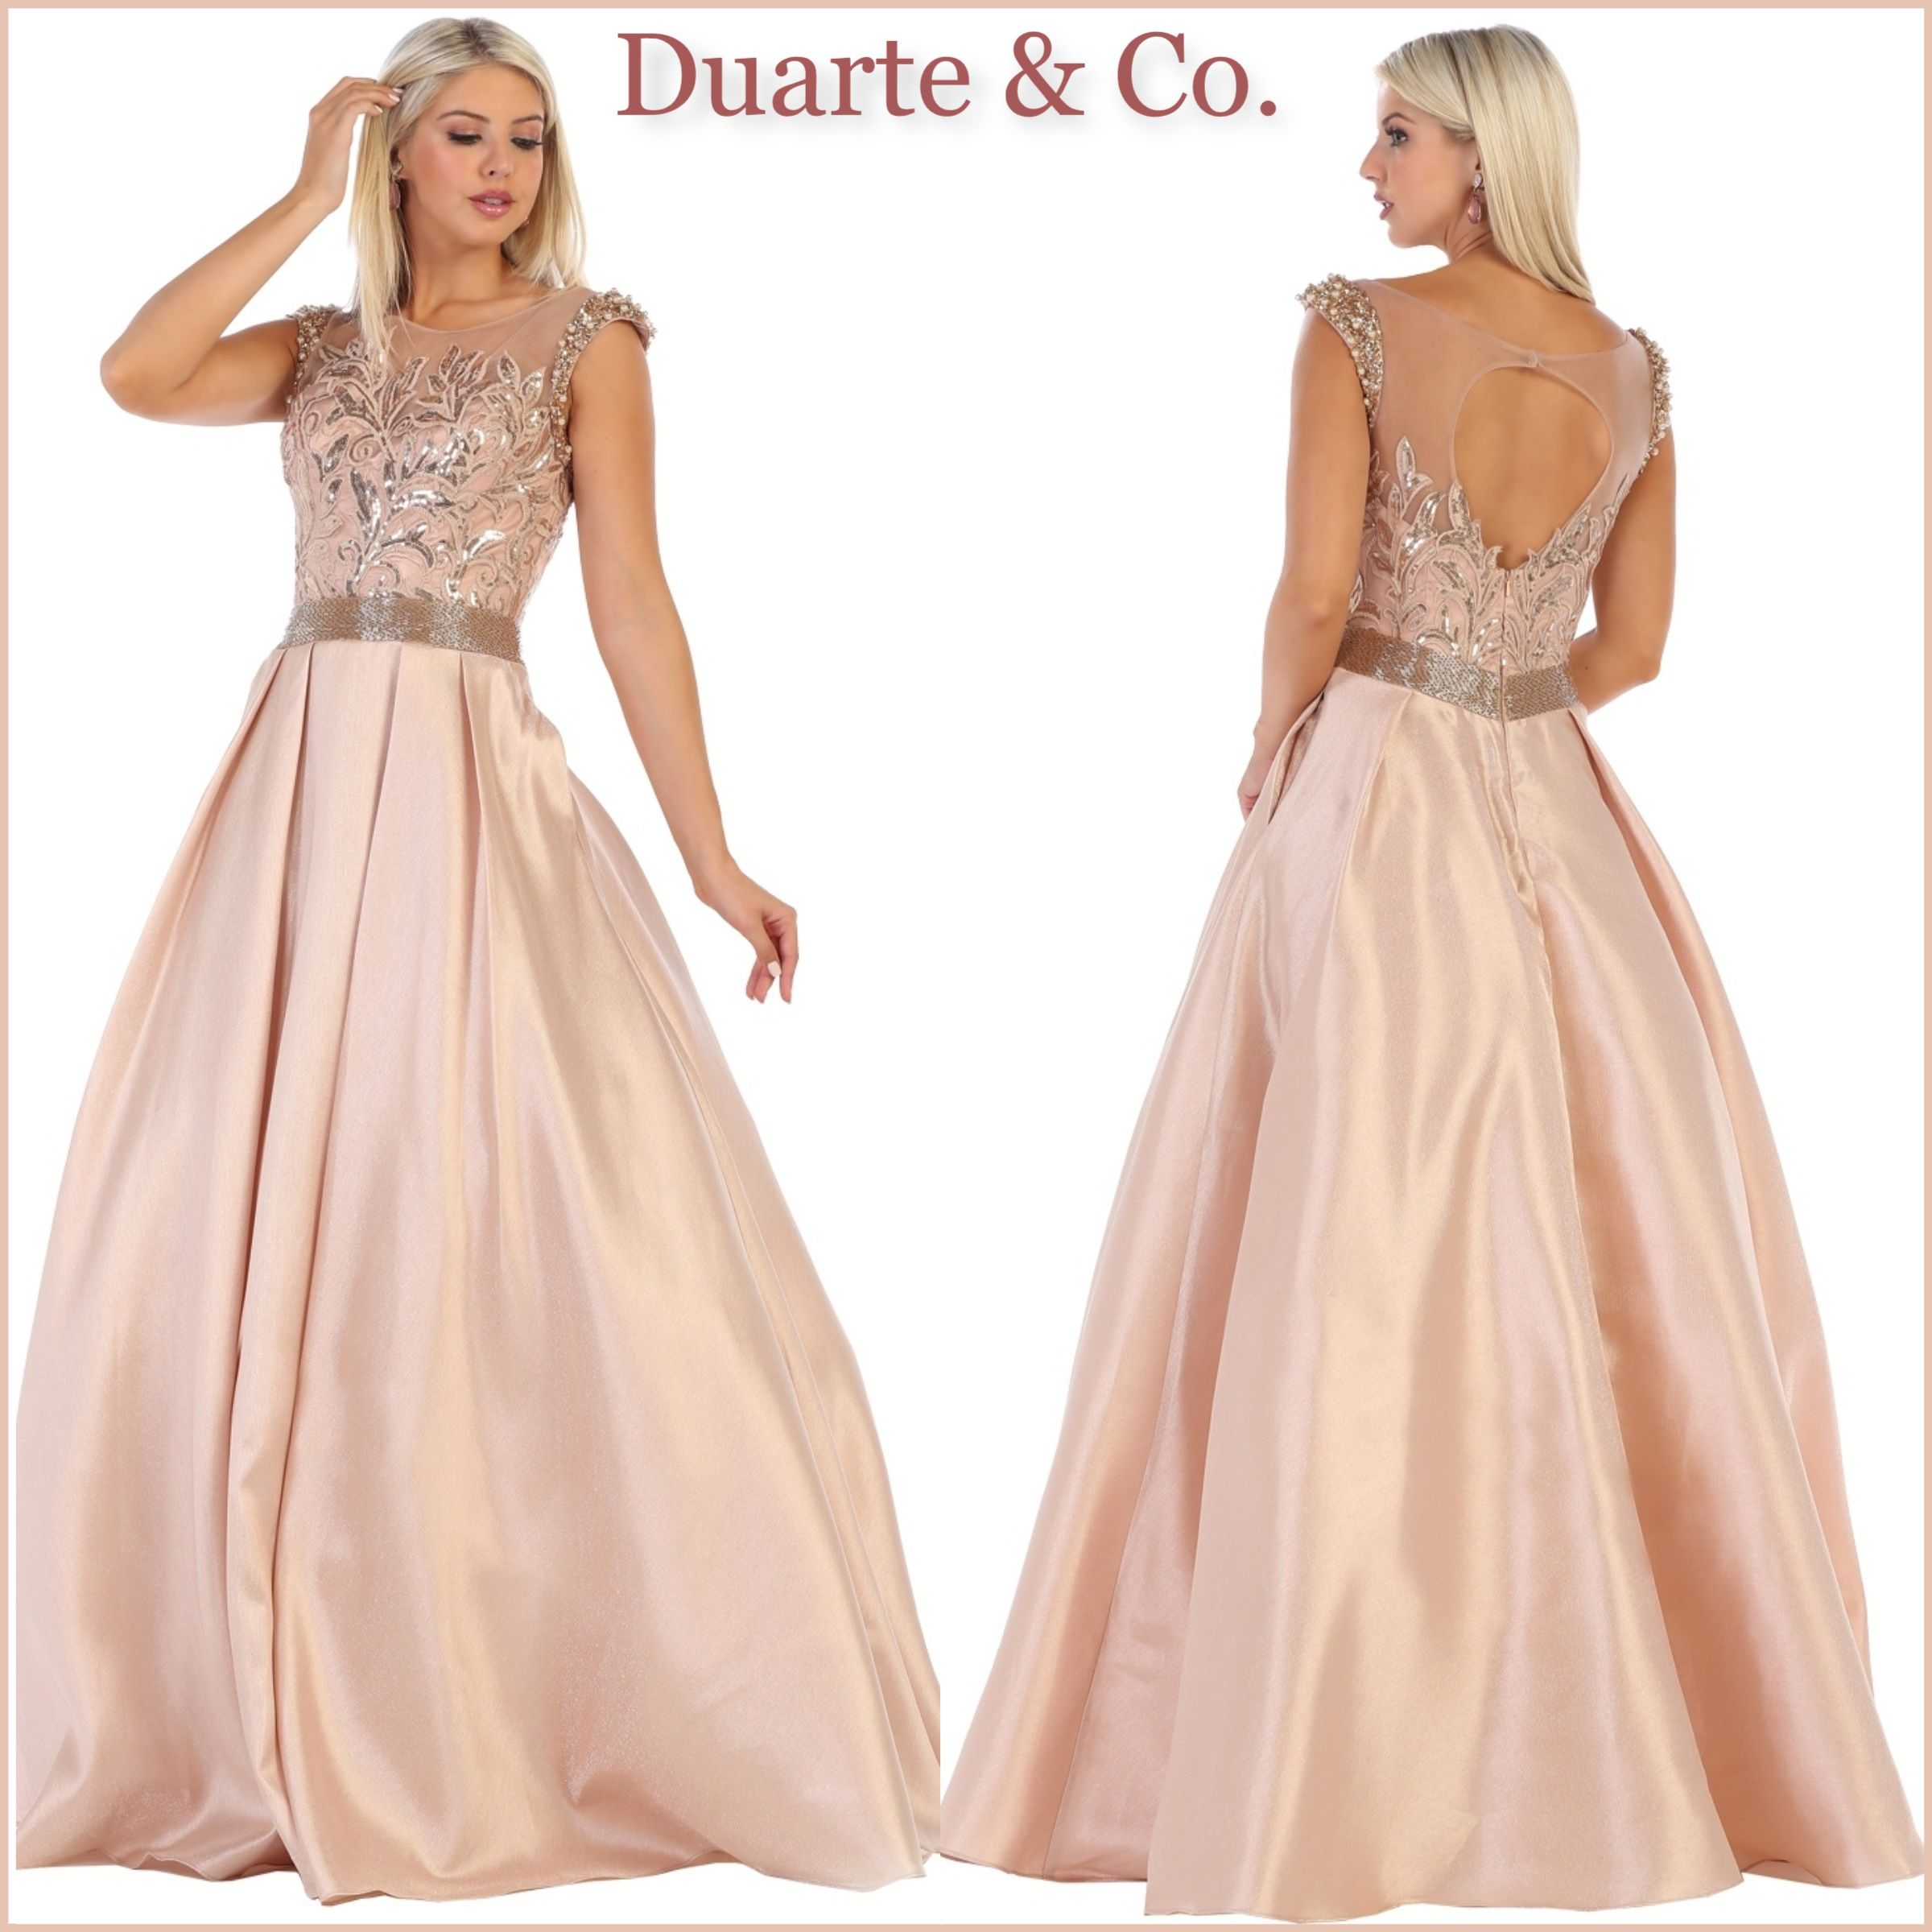 b279f4f6a99b DC177061 $250.00 Amazing Satin Ball Gown has hand beaded sequin  embroideries on top & waist over mesh material with long pleated satin  skirt with side ...